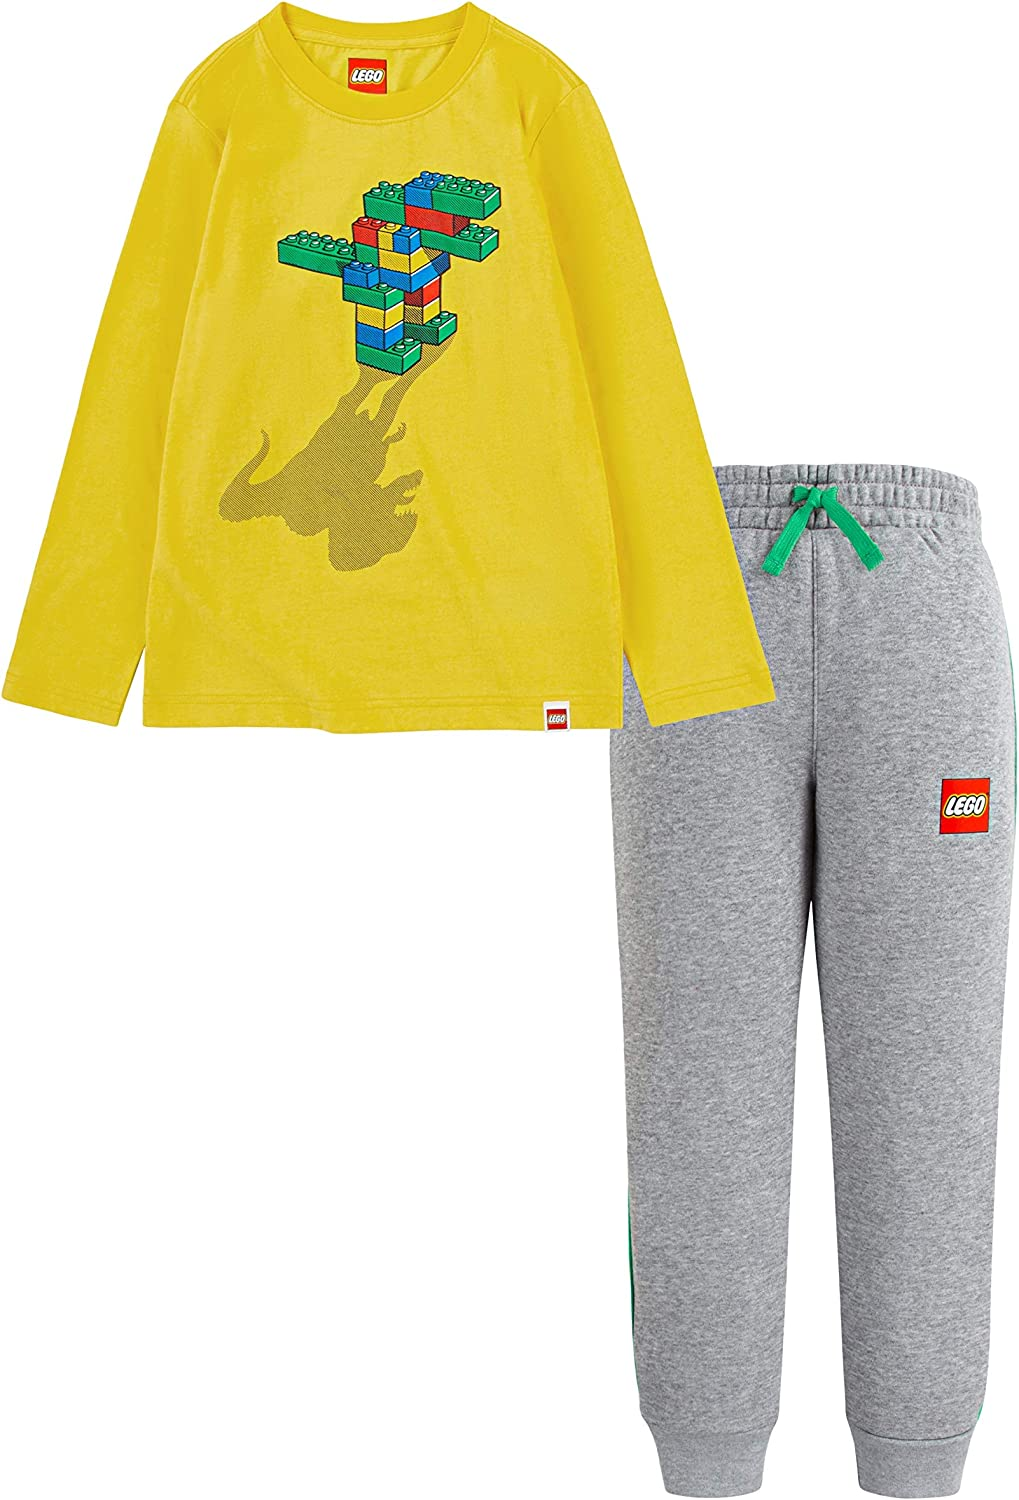 LEGO Boys' Long Sleeve Limited time for free shipping and Max 45% OFF Pants 2-Piece Set Jogger Outfit